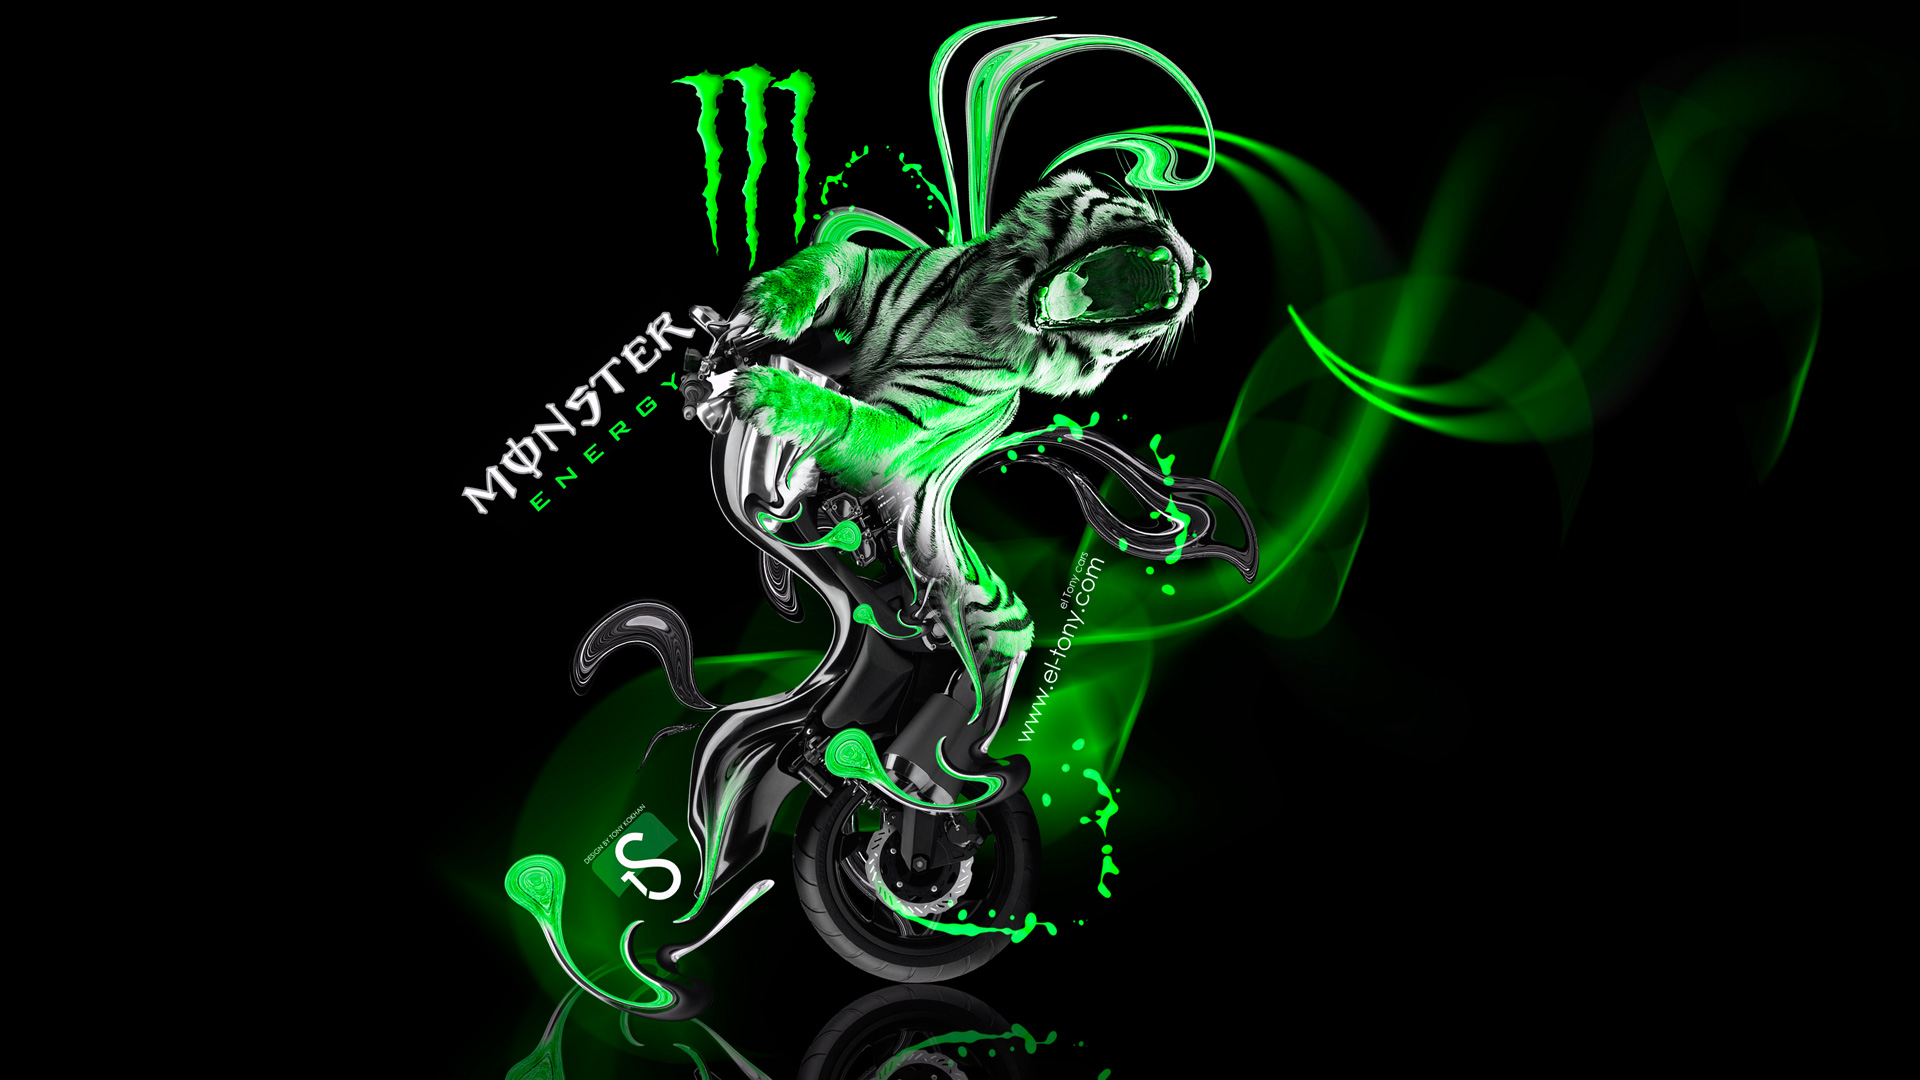 Monster Energy Green Fantasy Wallpaper Desktop 20860 Wallpaper 1920x1080